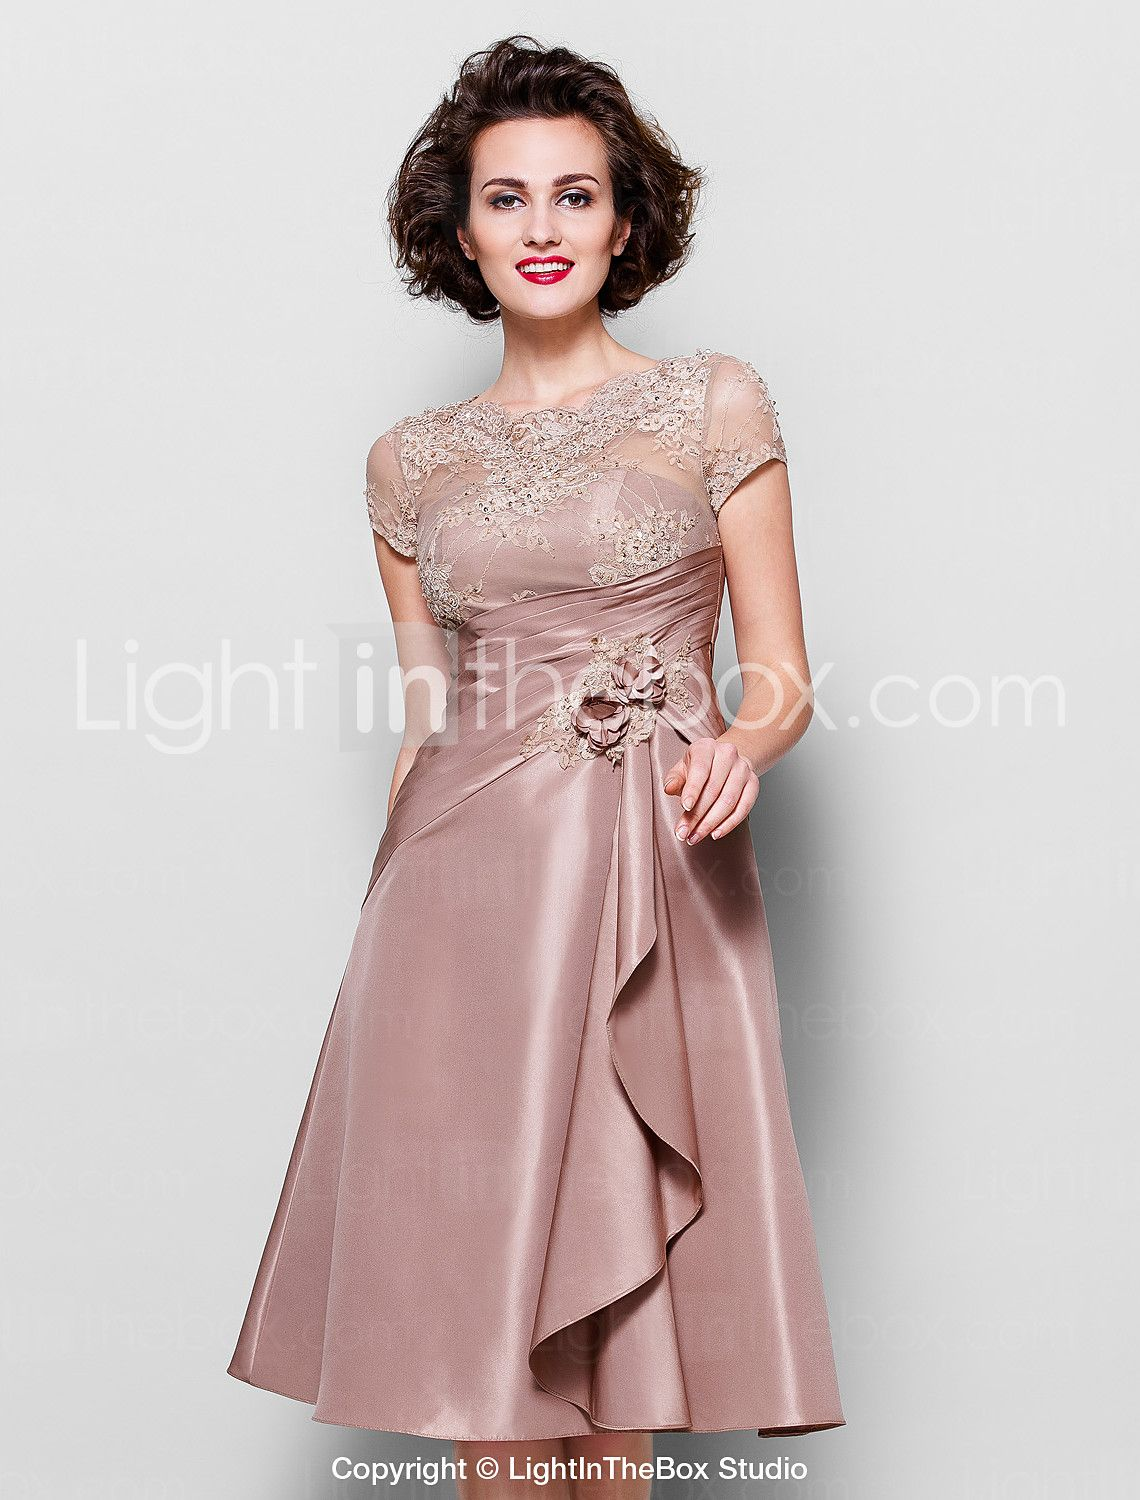 A-line Plus Sizes / Petite Mother of the Bride Dress - Brown Knee-length Short Sleeve Lace / Taffeta 2015 – $98.99